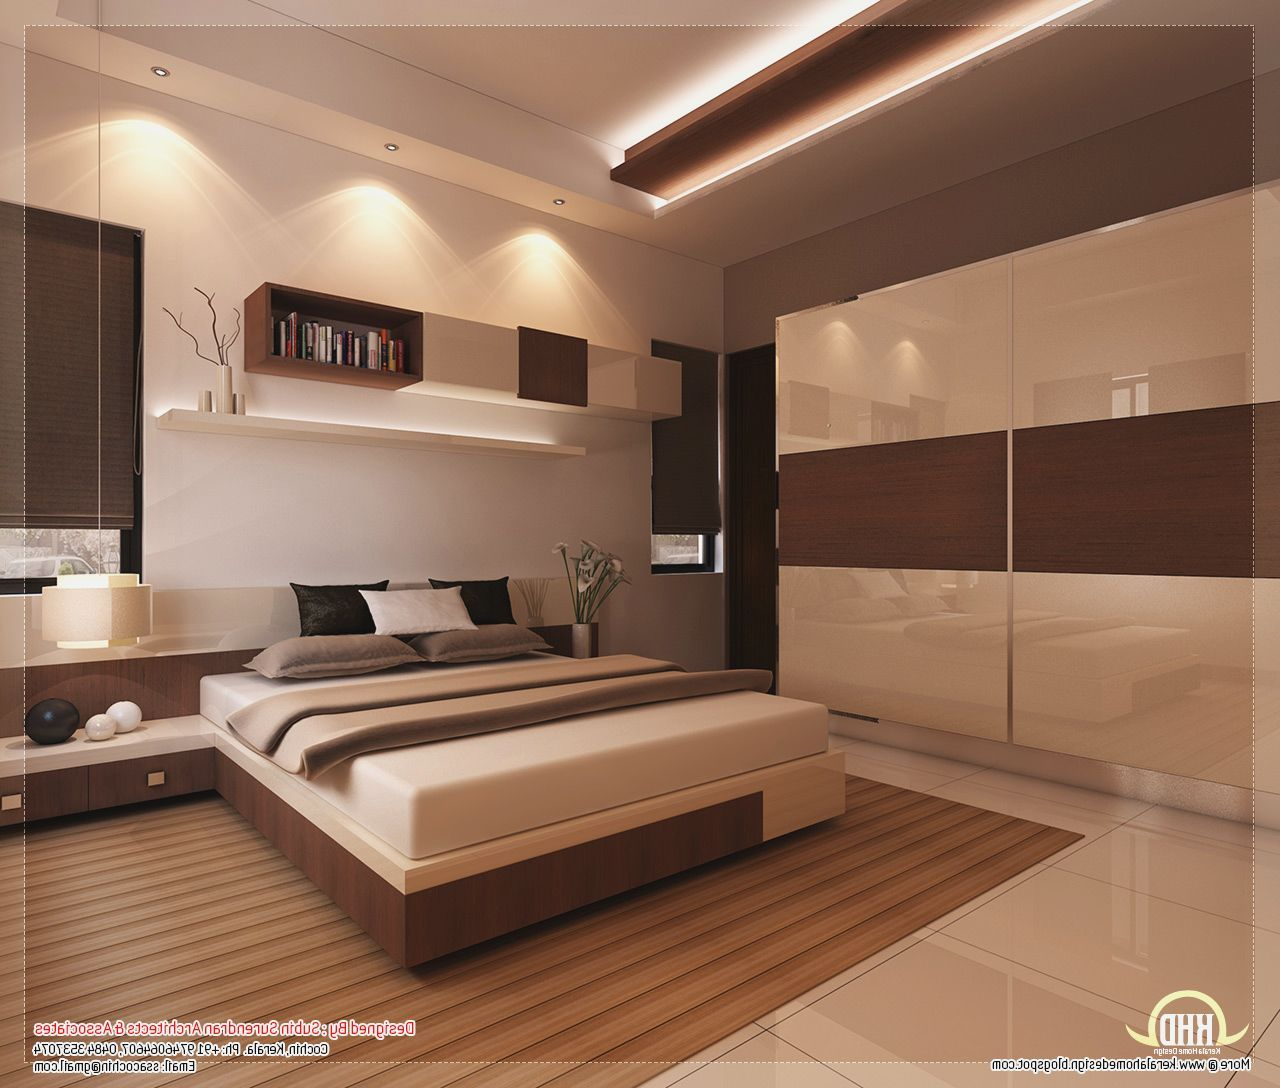 Bedroom designs india low cost more picture bedroom for Indian bedroom design photos